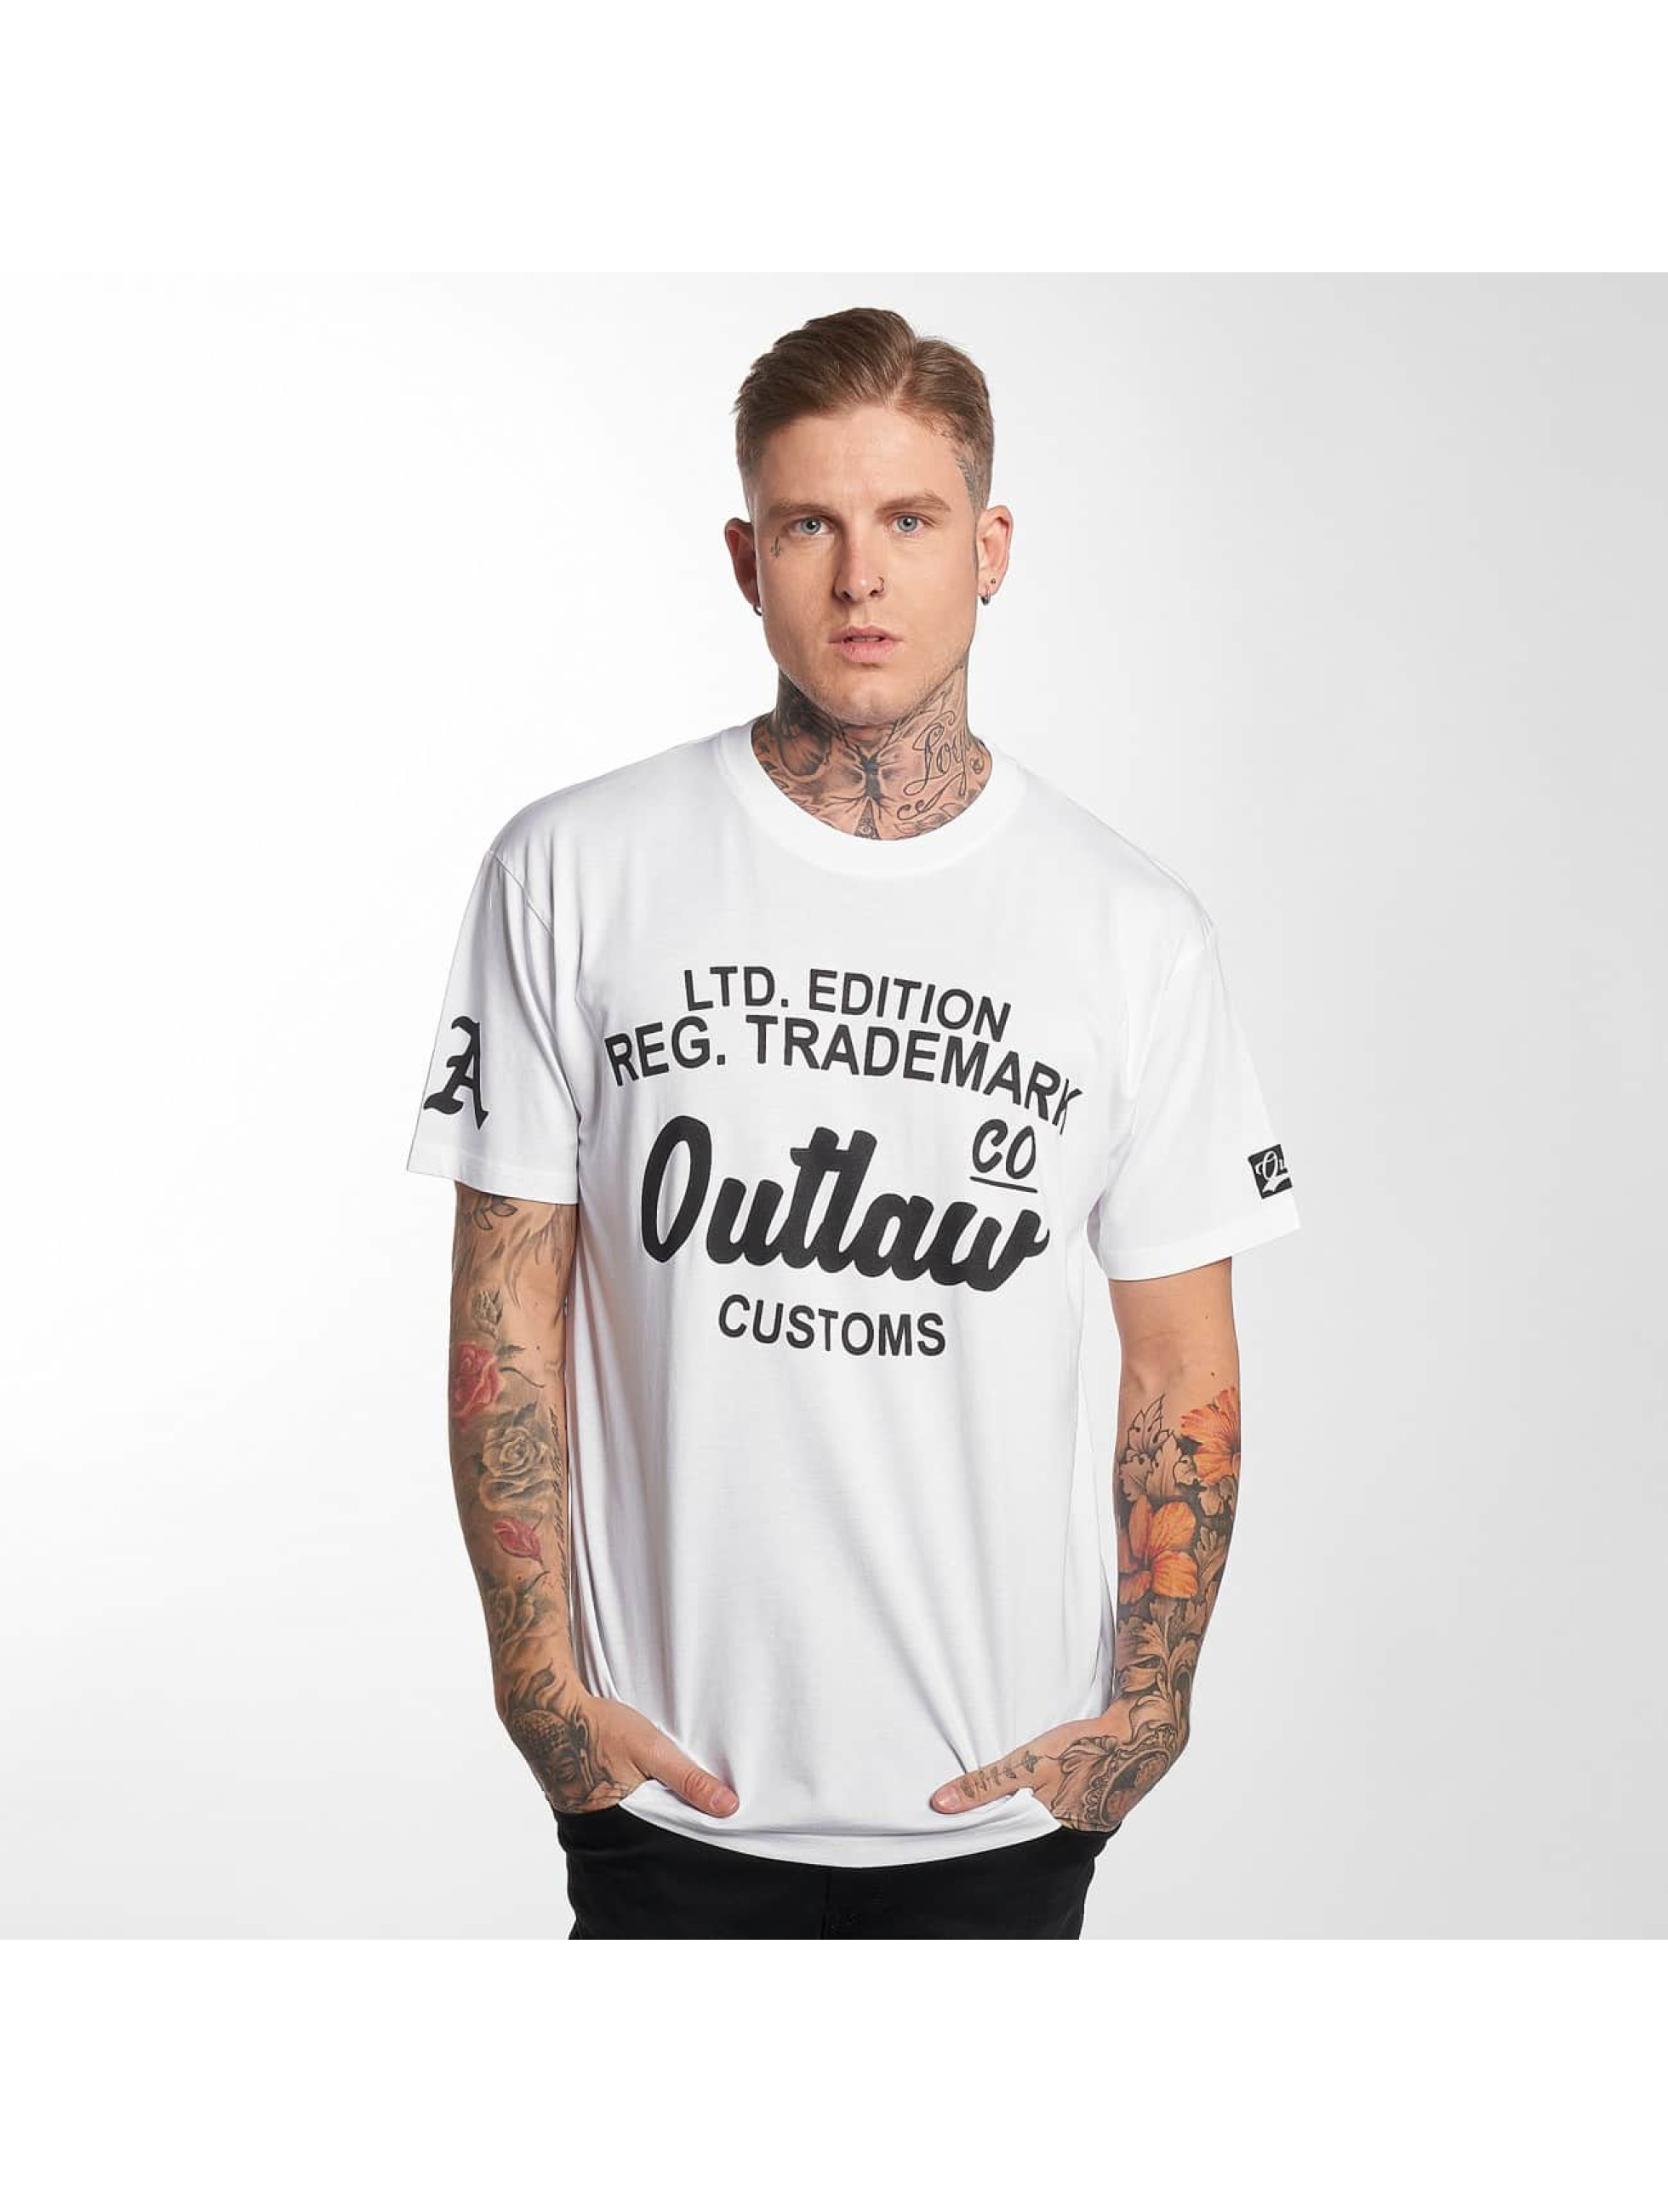 Outlaw T-Shirt Outlaw Customs blanc